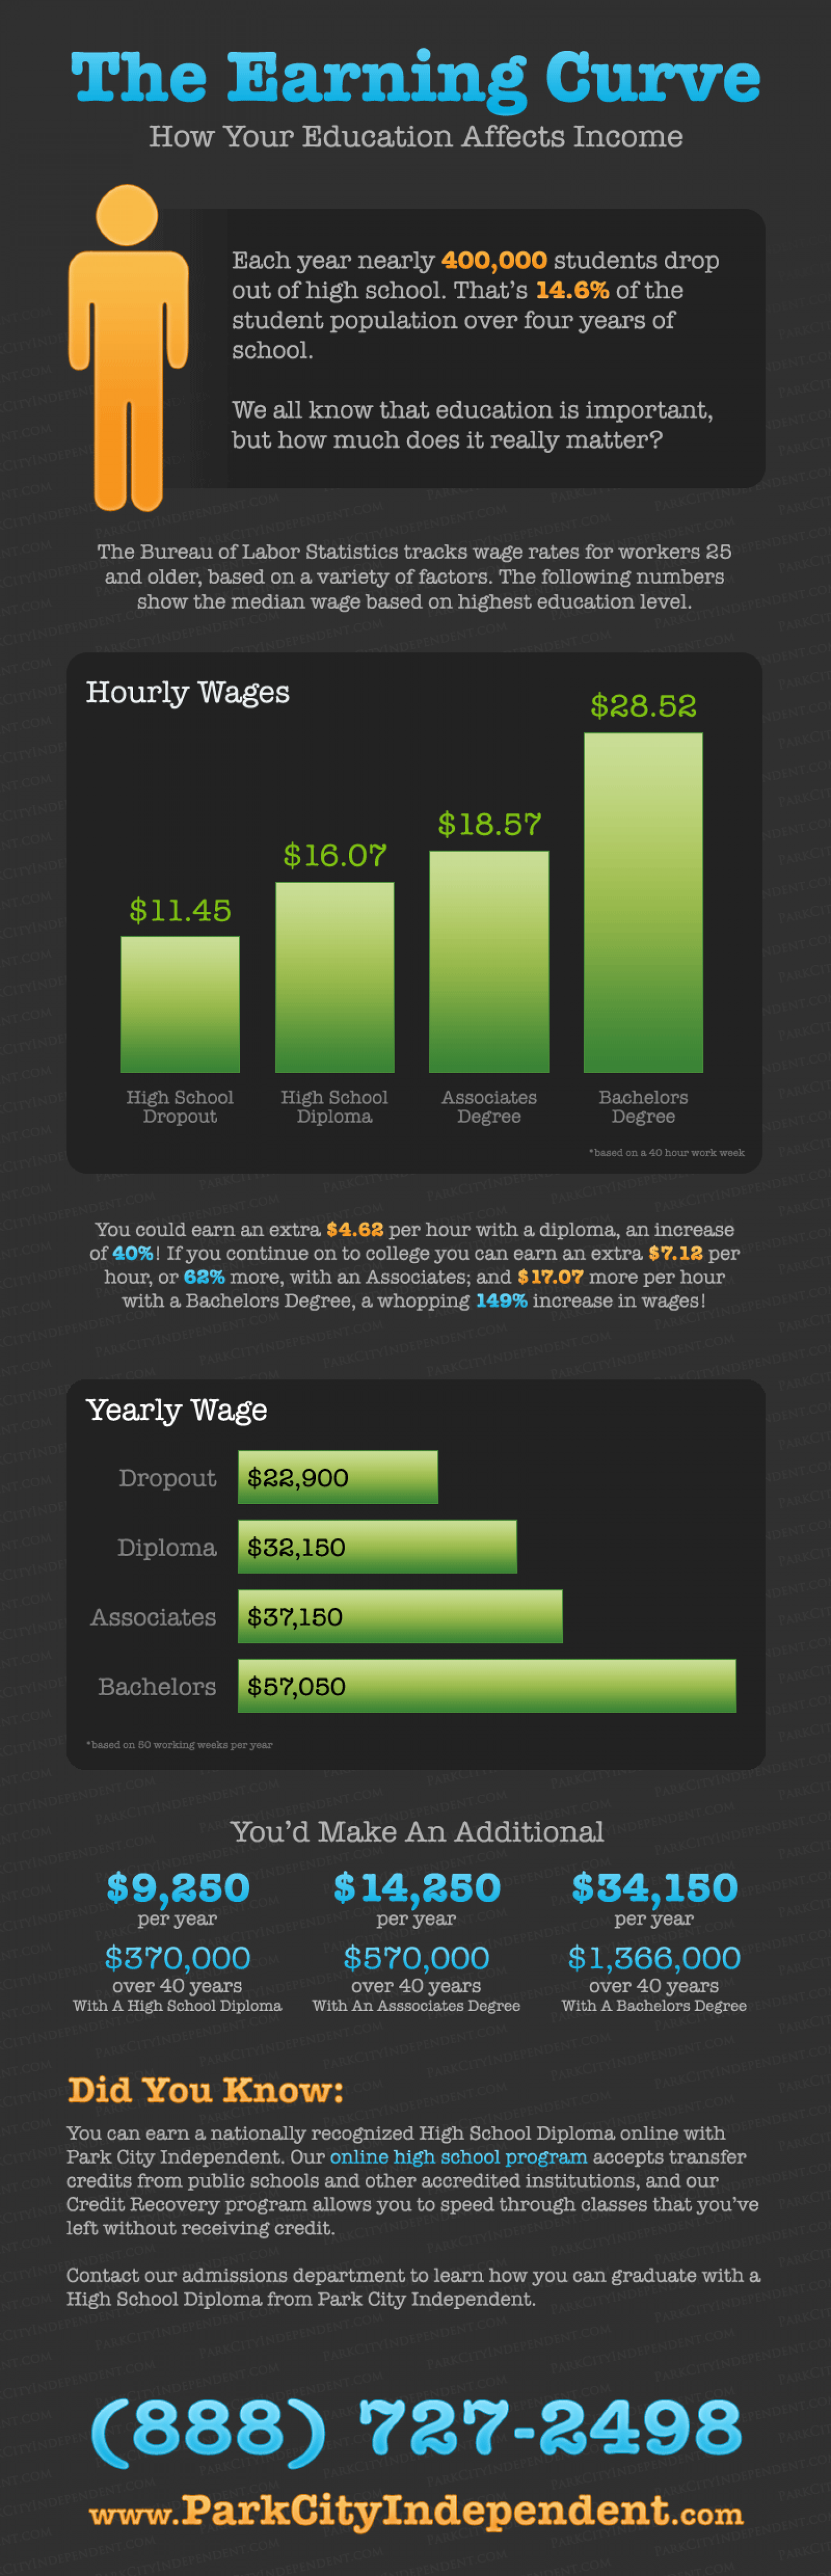 The Earning Curve Infographic